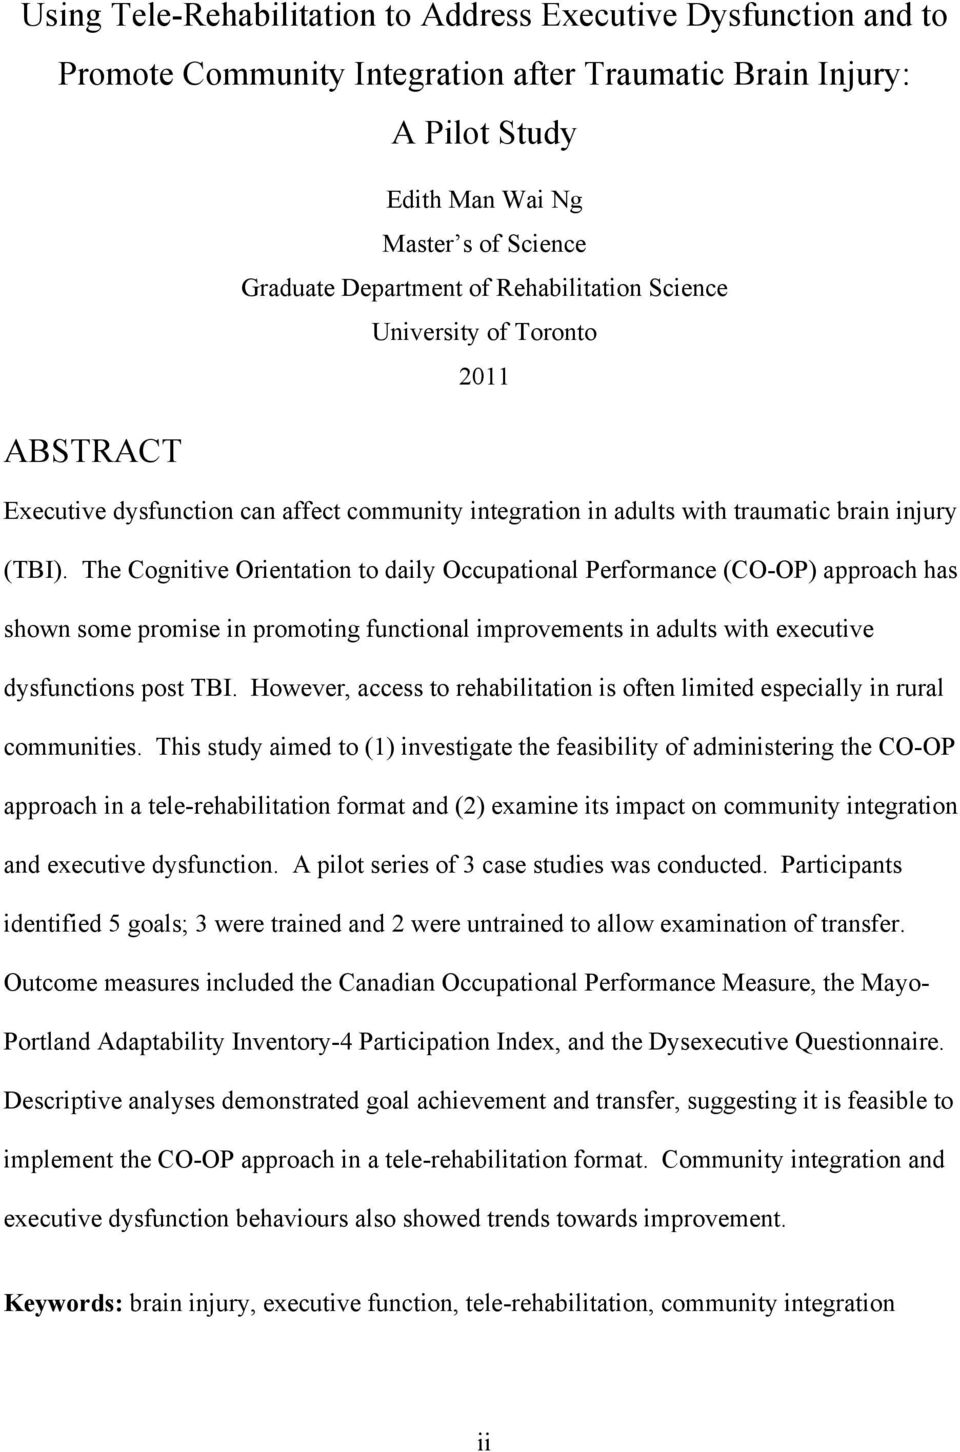 The Cognitive Orientation to daily Occupational Performance (CO-OP) approach has shown some promise in promoting functional improvements in adults with executive dysfunctions post TBI.